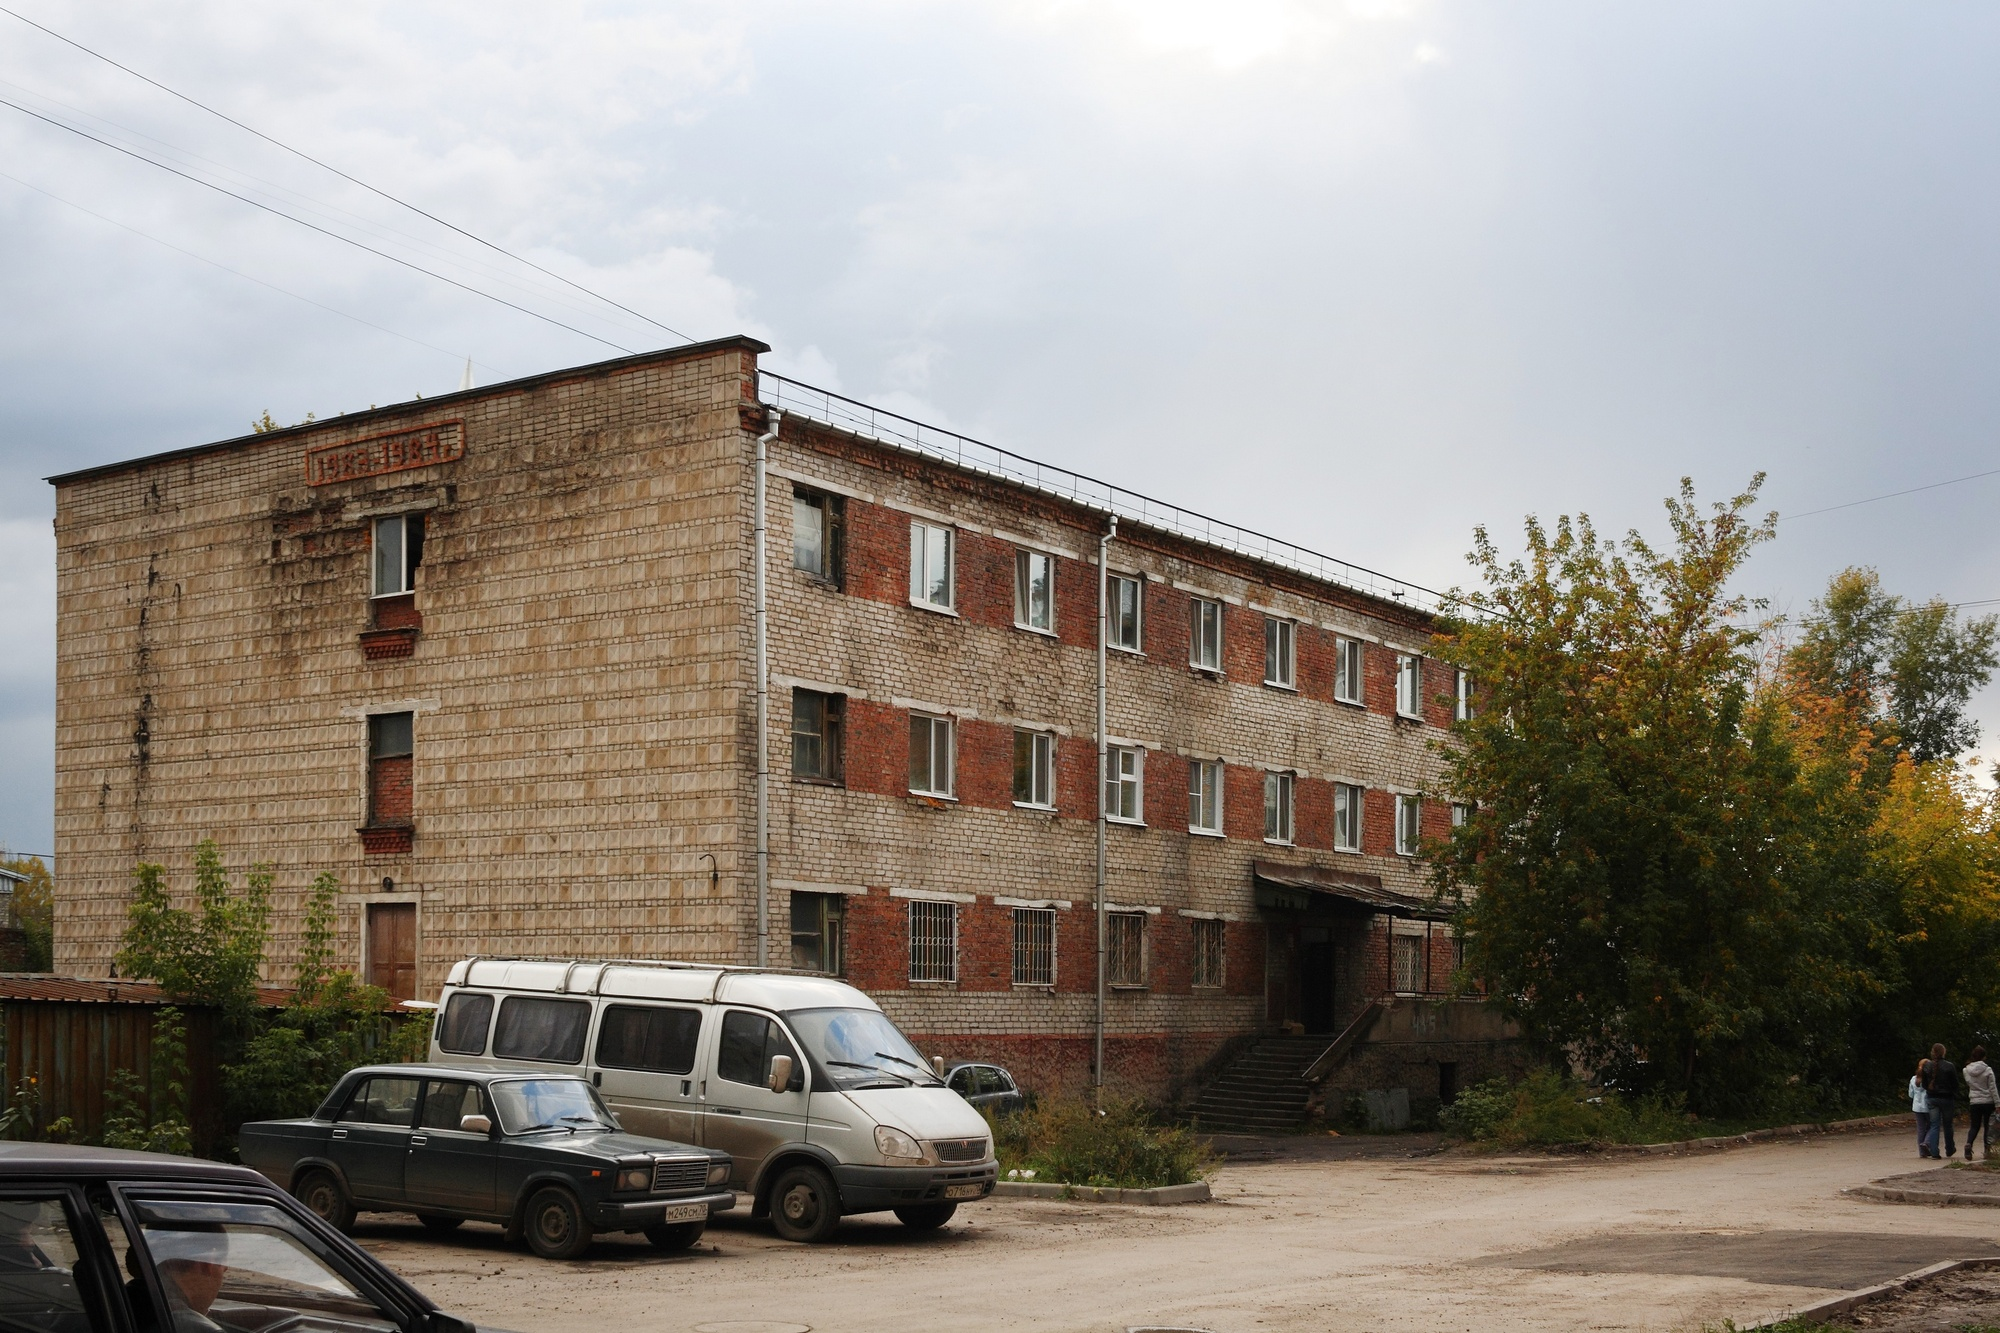 File:Old apartment building in Tomsk.JPG - Wikimedia Commons